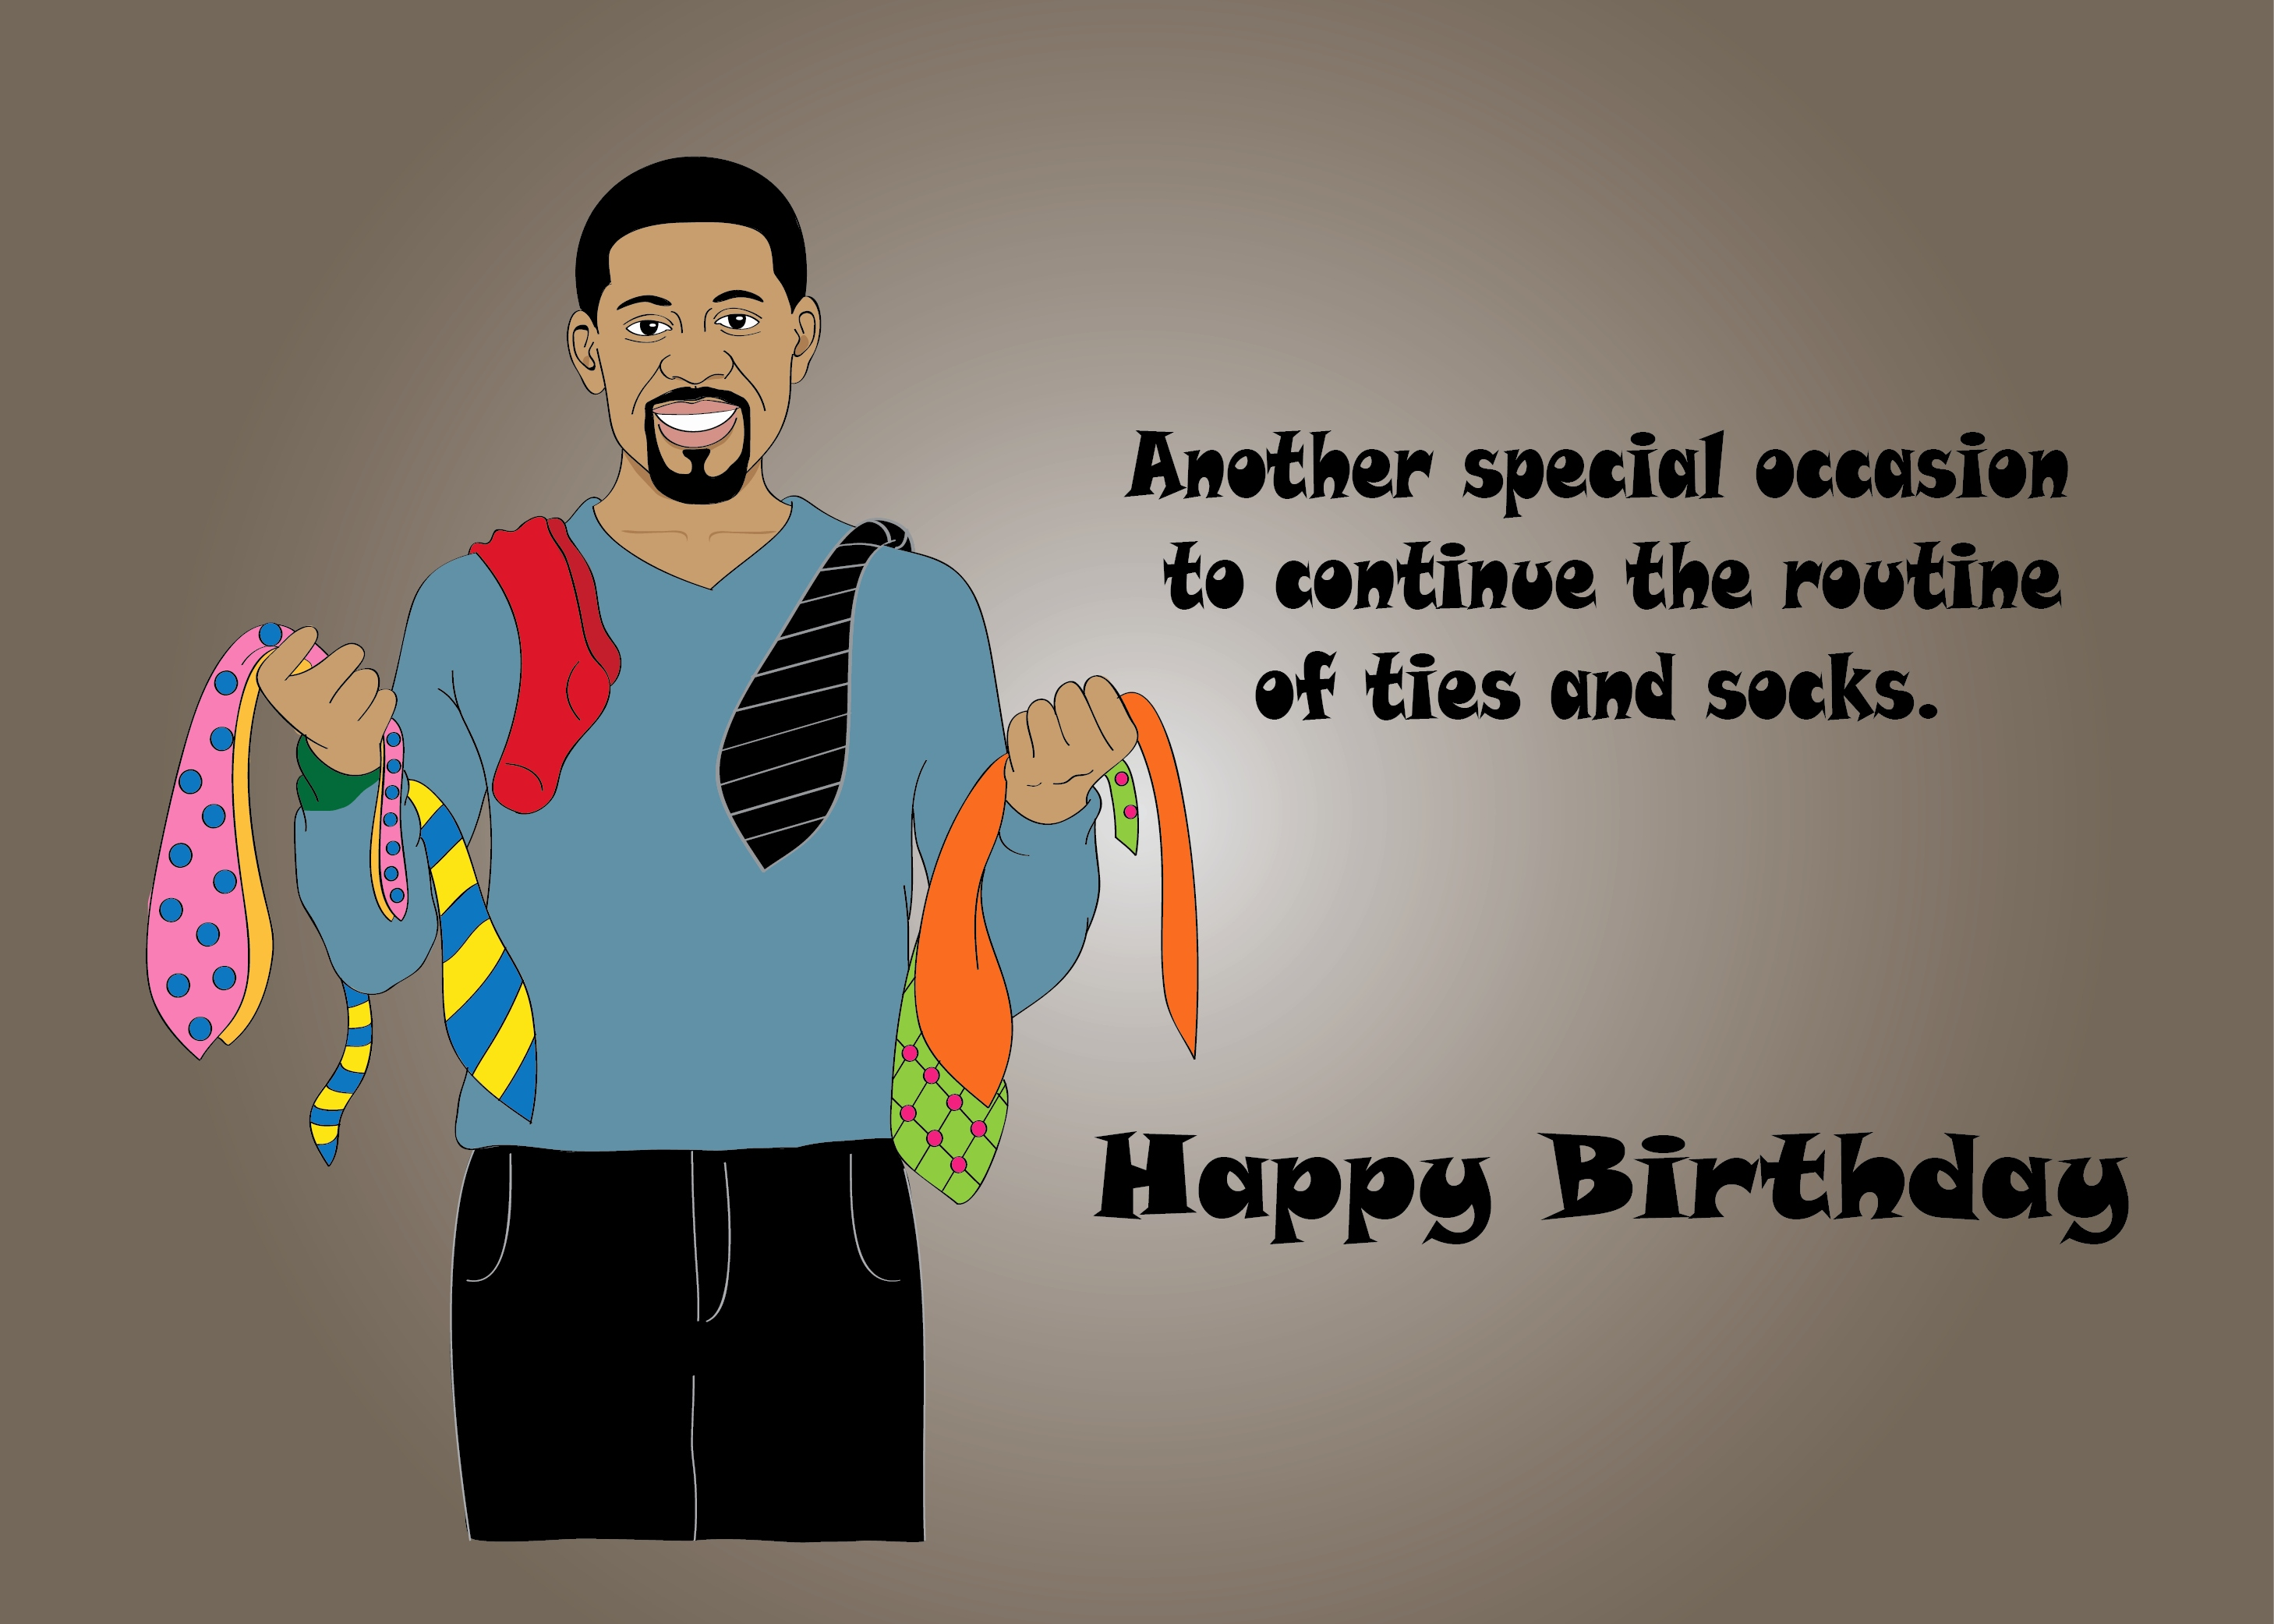 happy birthday african american man ; afrocentric-birthday-cards-inspirational-birthday-card-for-men-handsome-black-african-american-man-with-of-afrocentric-birthday-cards